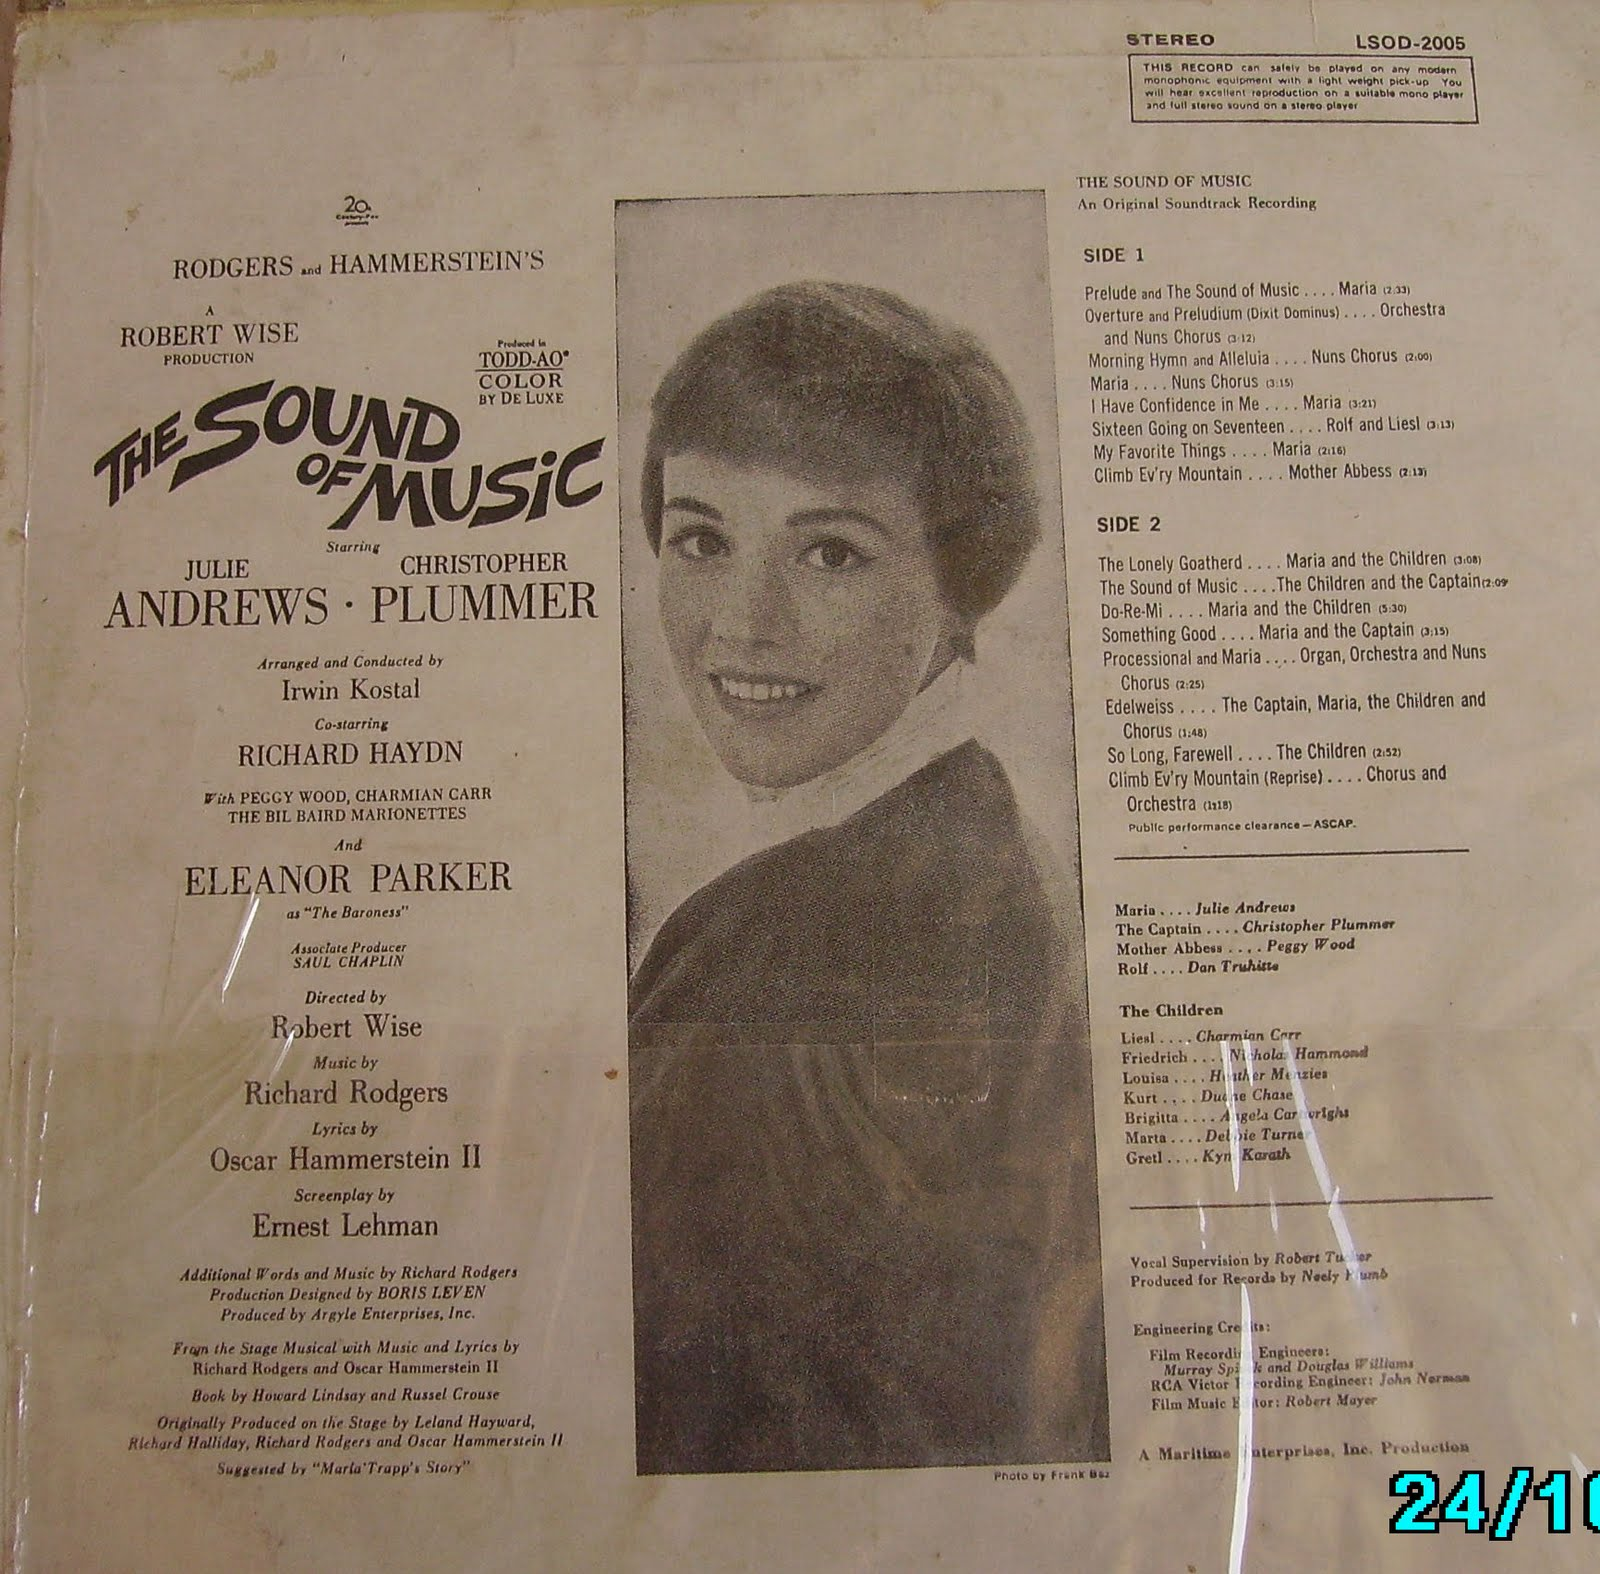 Jay's world of Music: Julie Andrews and the Sound of Music.